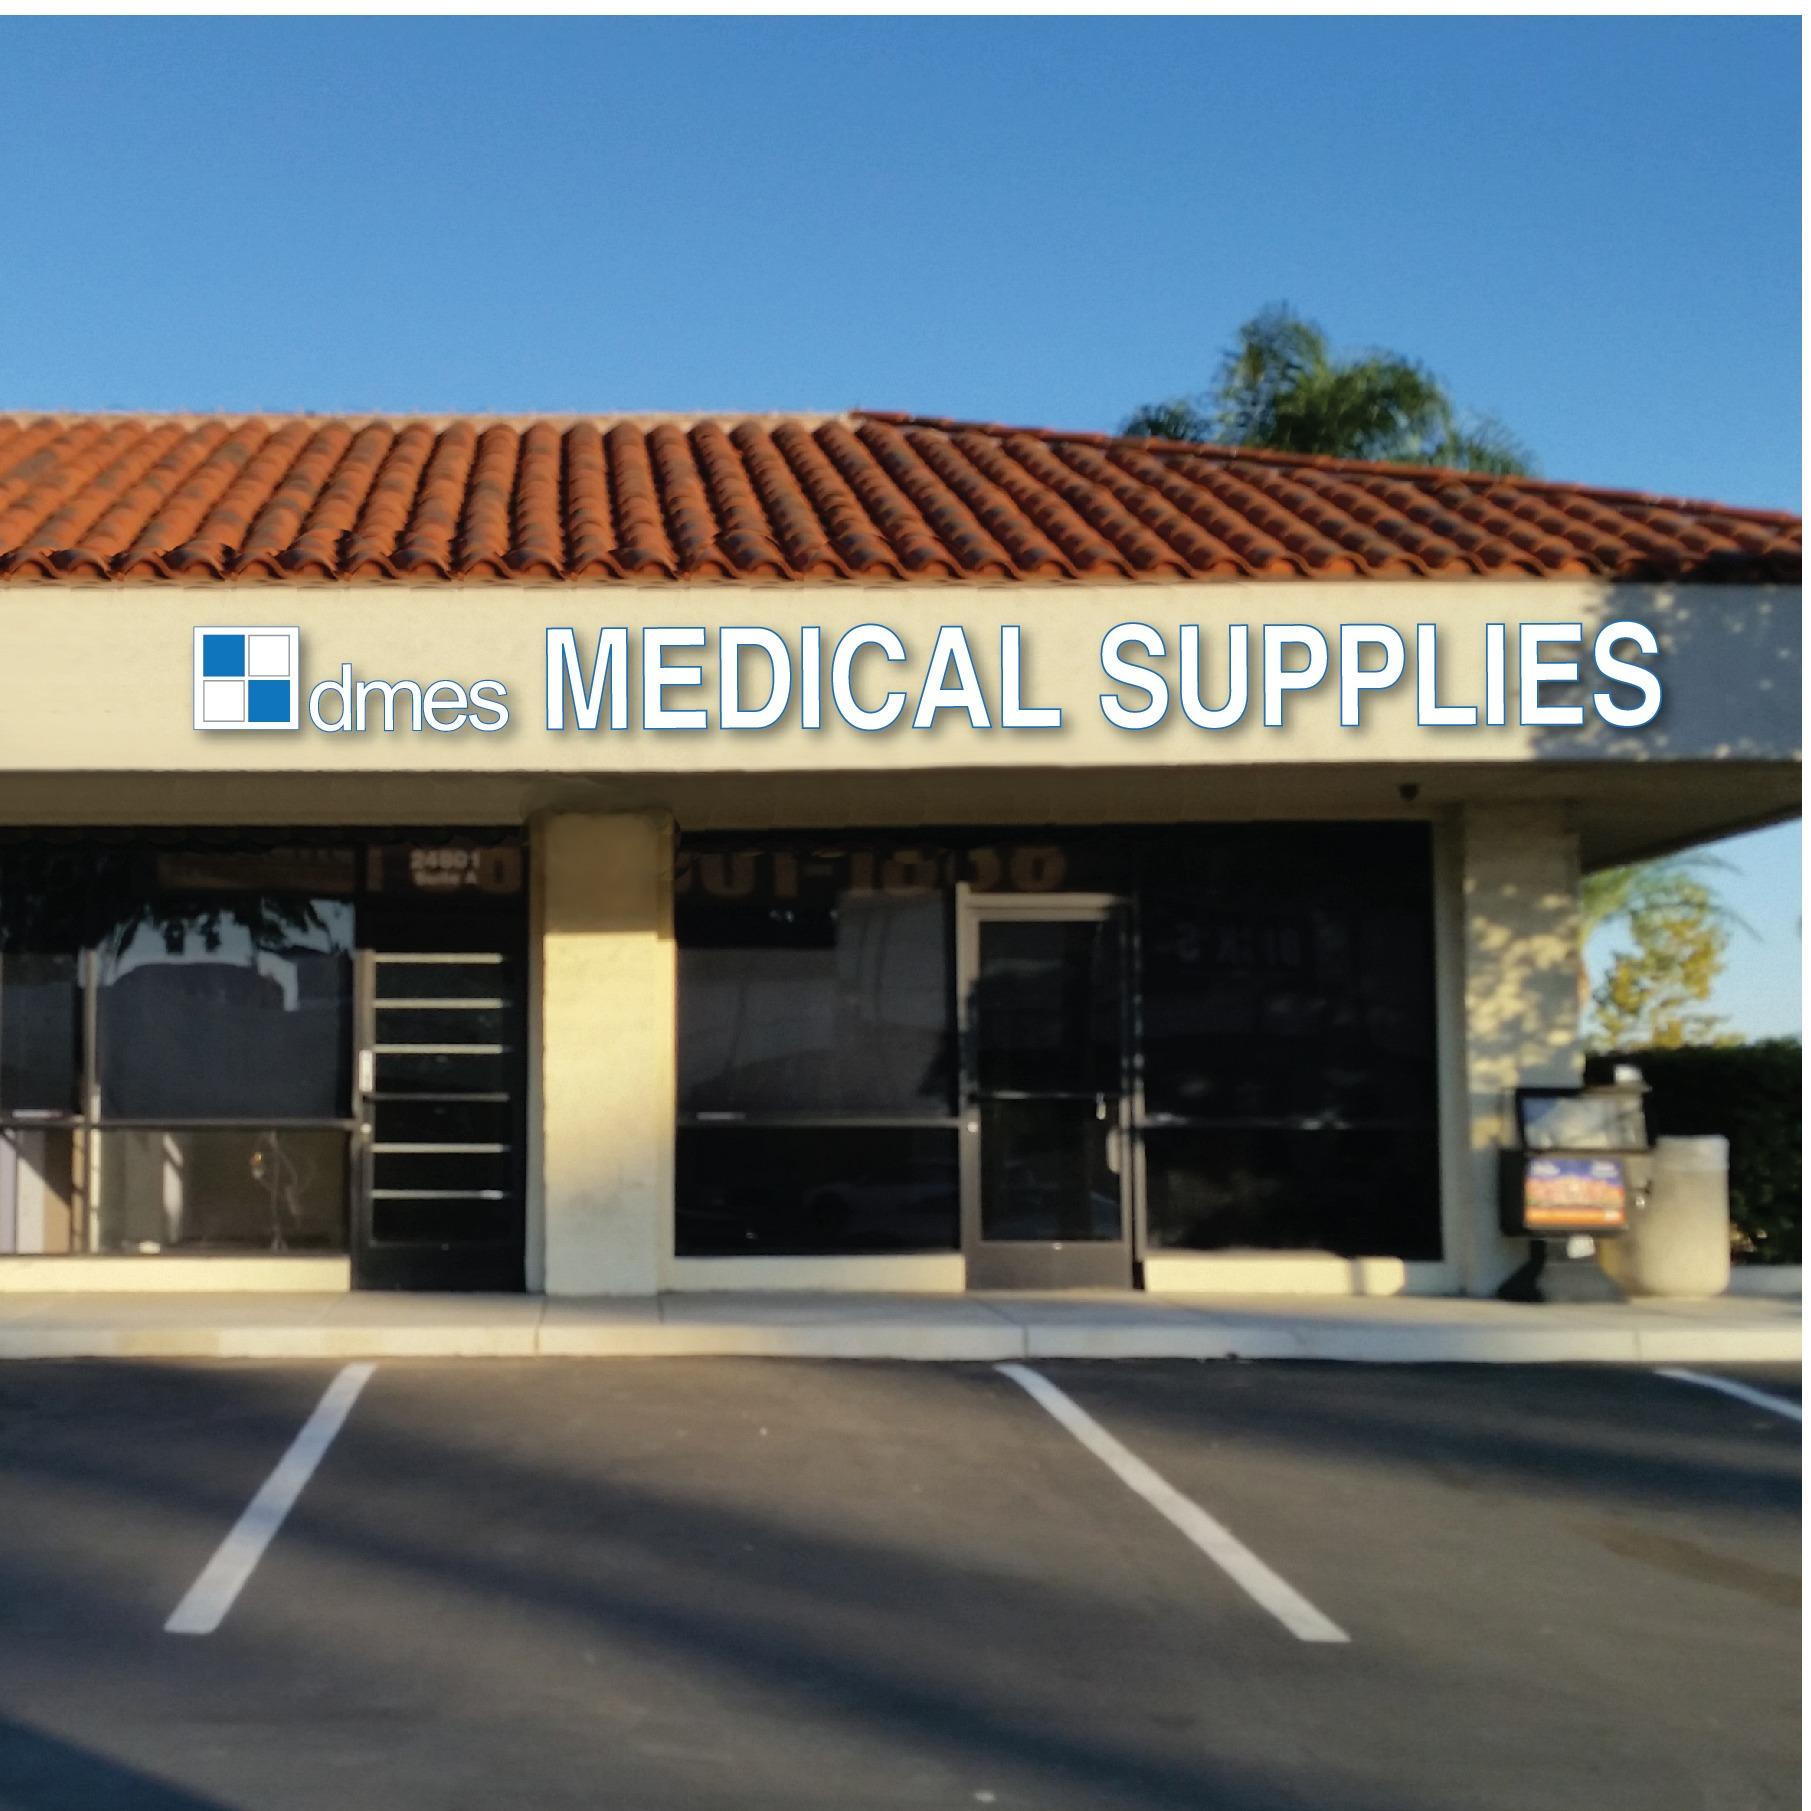 DMES Home Medical Supply Store Laguna Hills